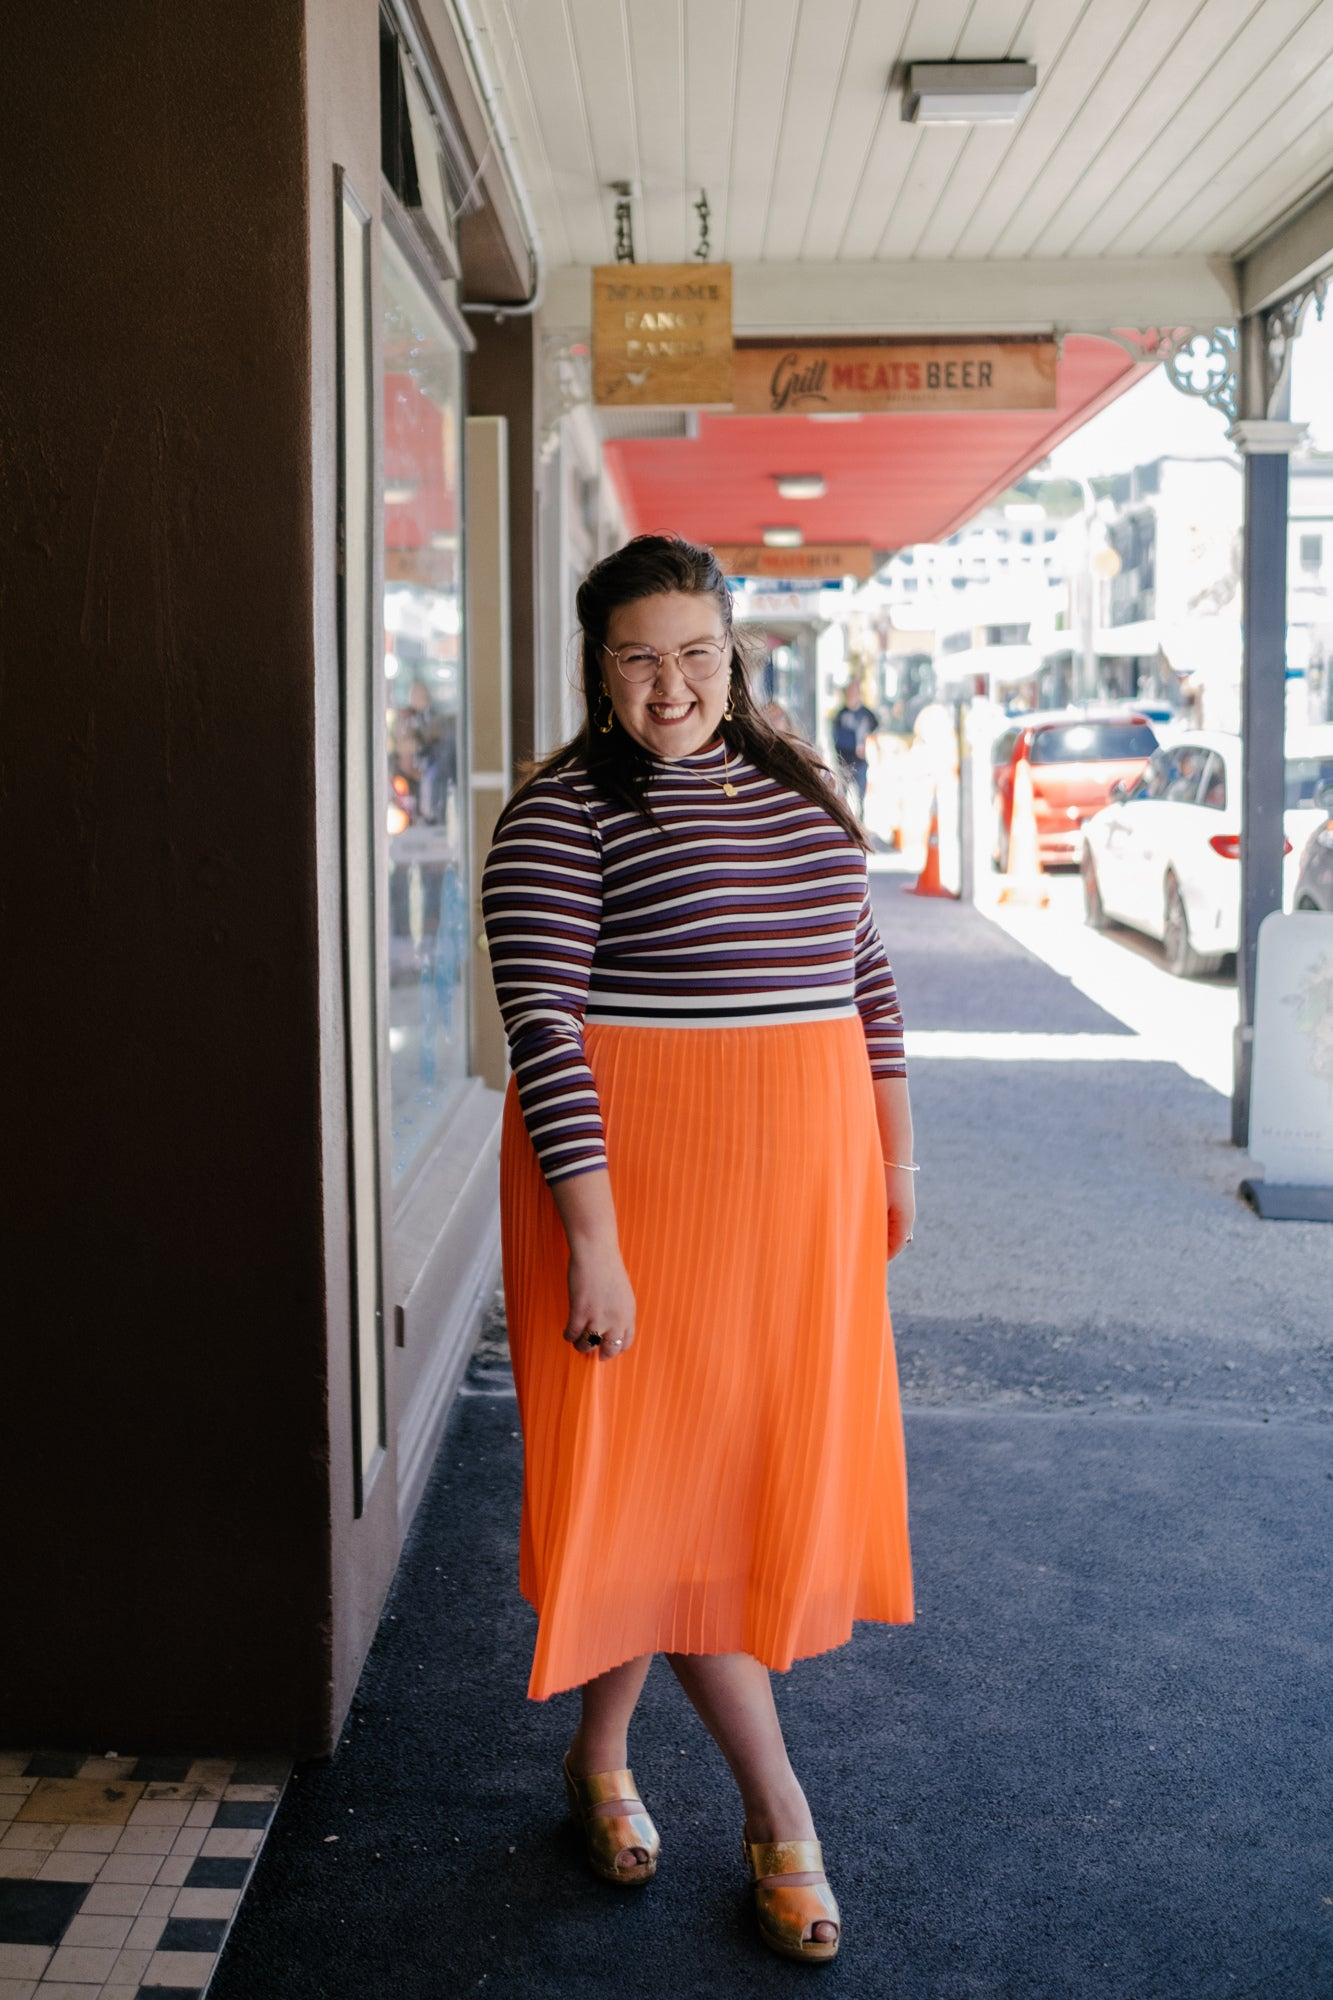 Sasha stands, smiling on Cuba Street, with the road stretching out behind her.